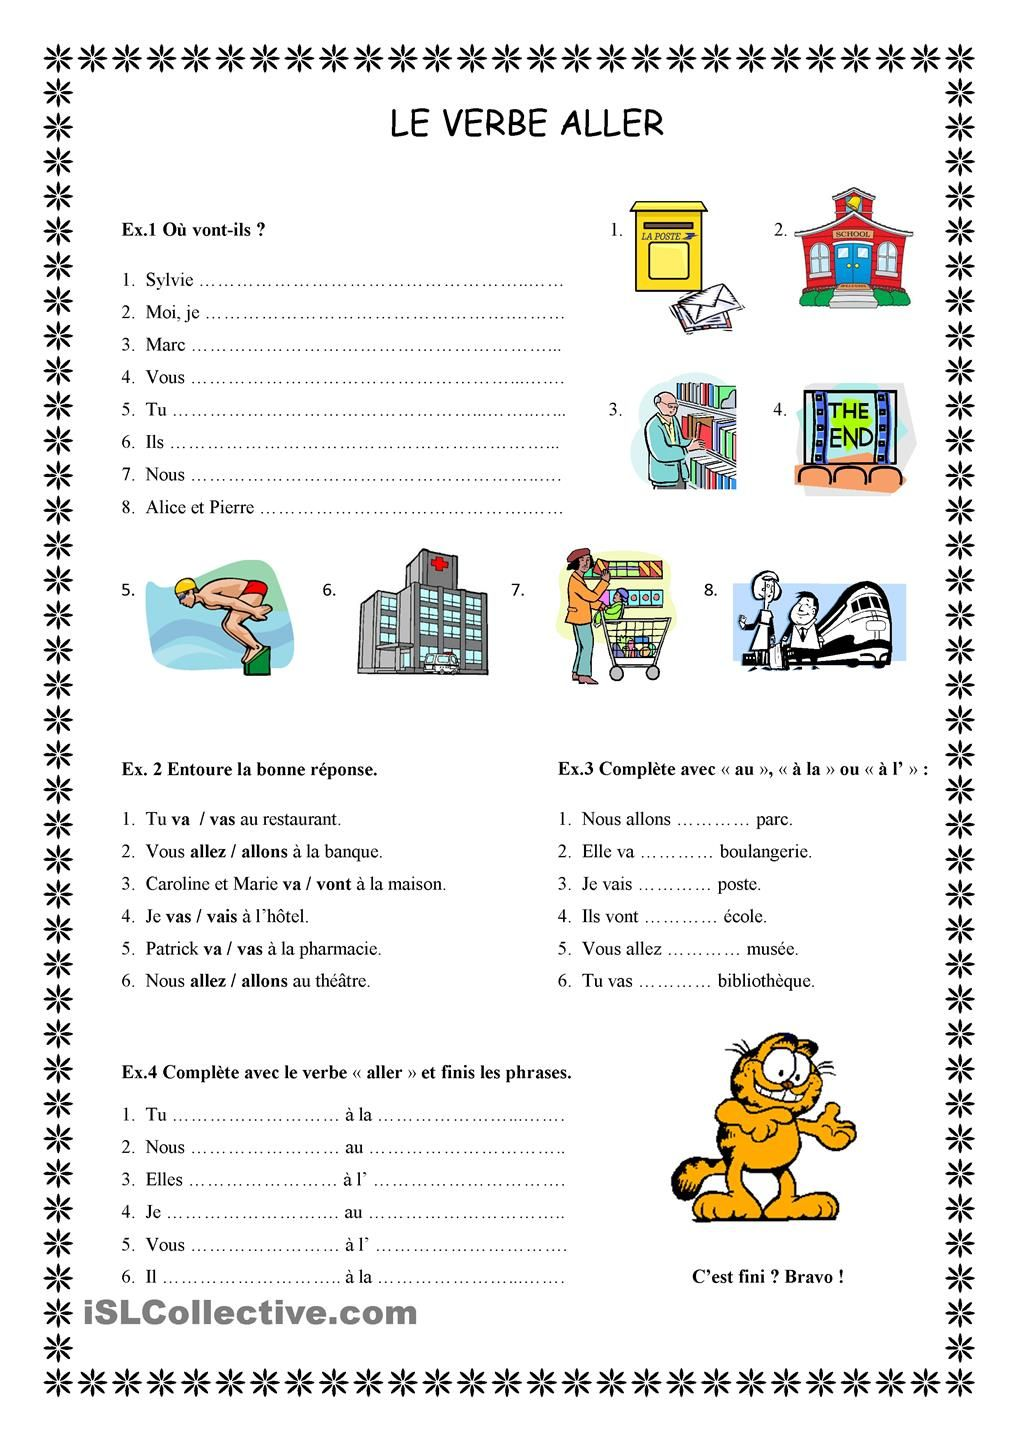 Le verbe aller speak french learning french and language - Fait maison en anglais ...